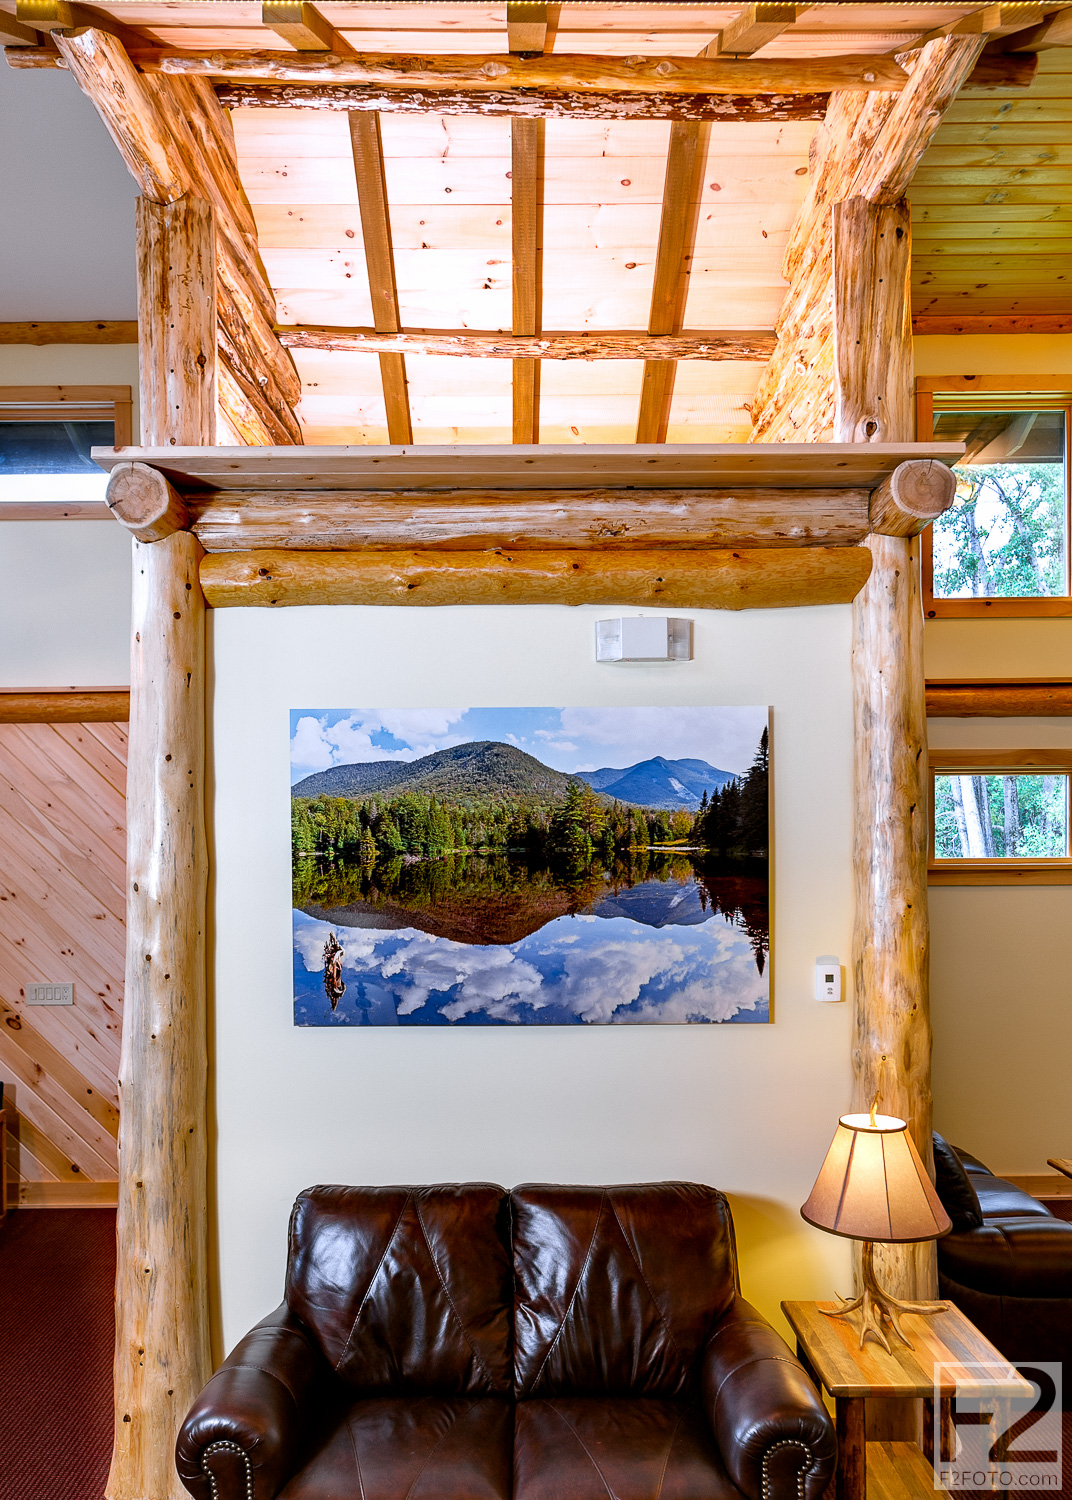 Adk-Spruce-Lodge-Facebook-36.jpg